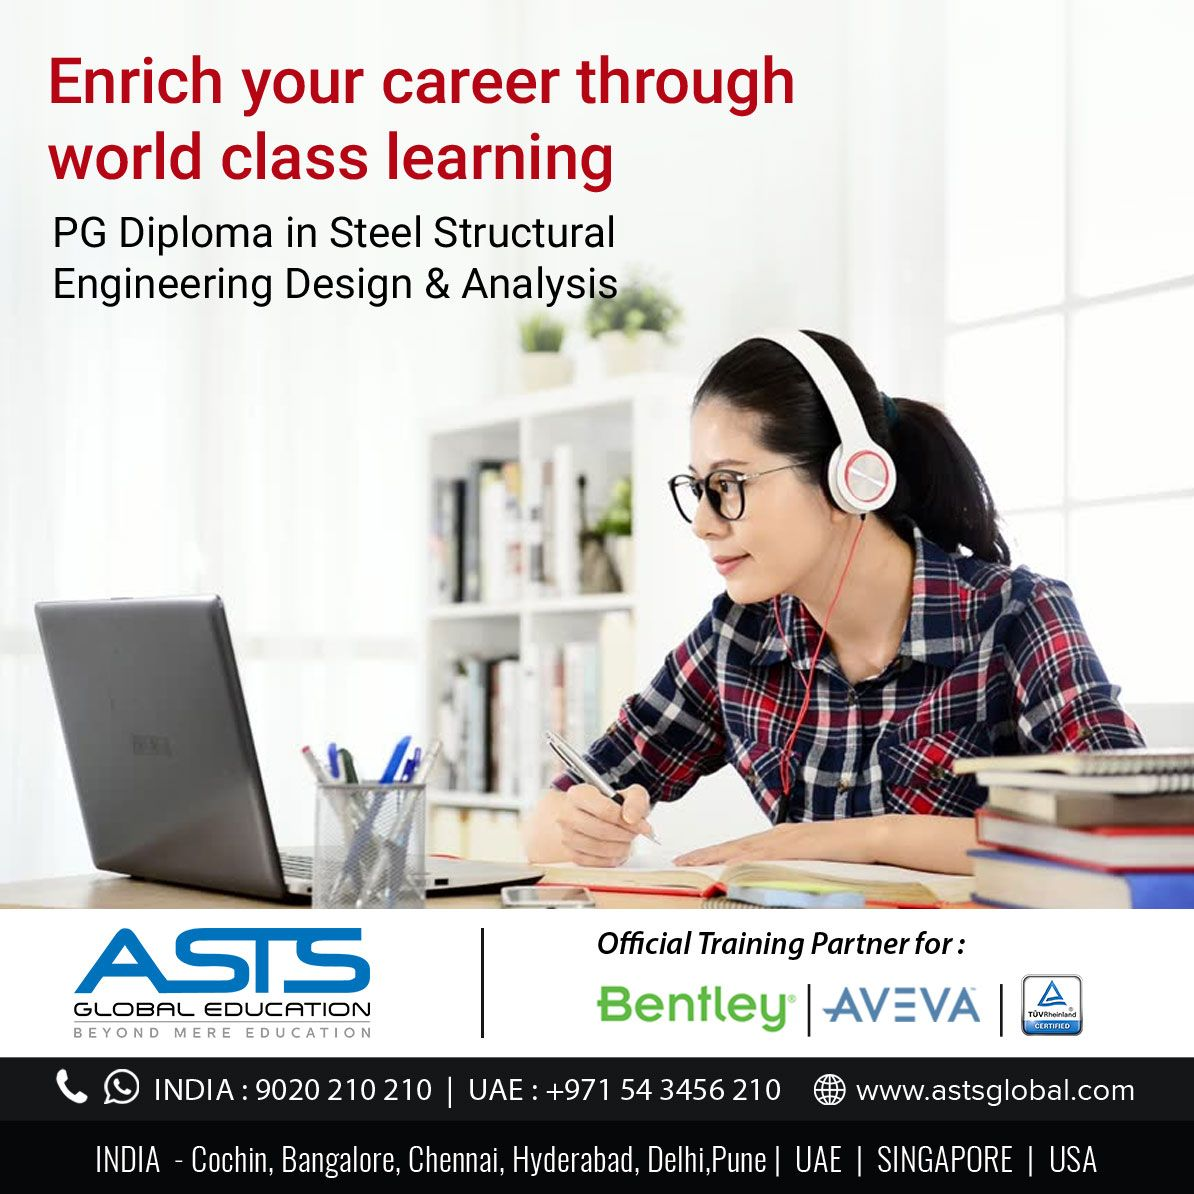 Get certified and enrich your career in Steel Structural